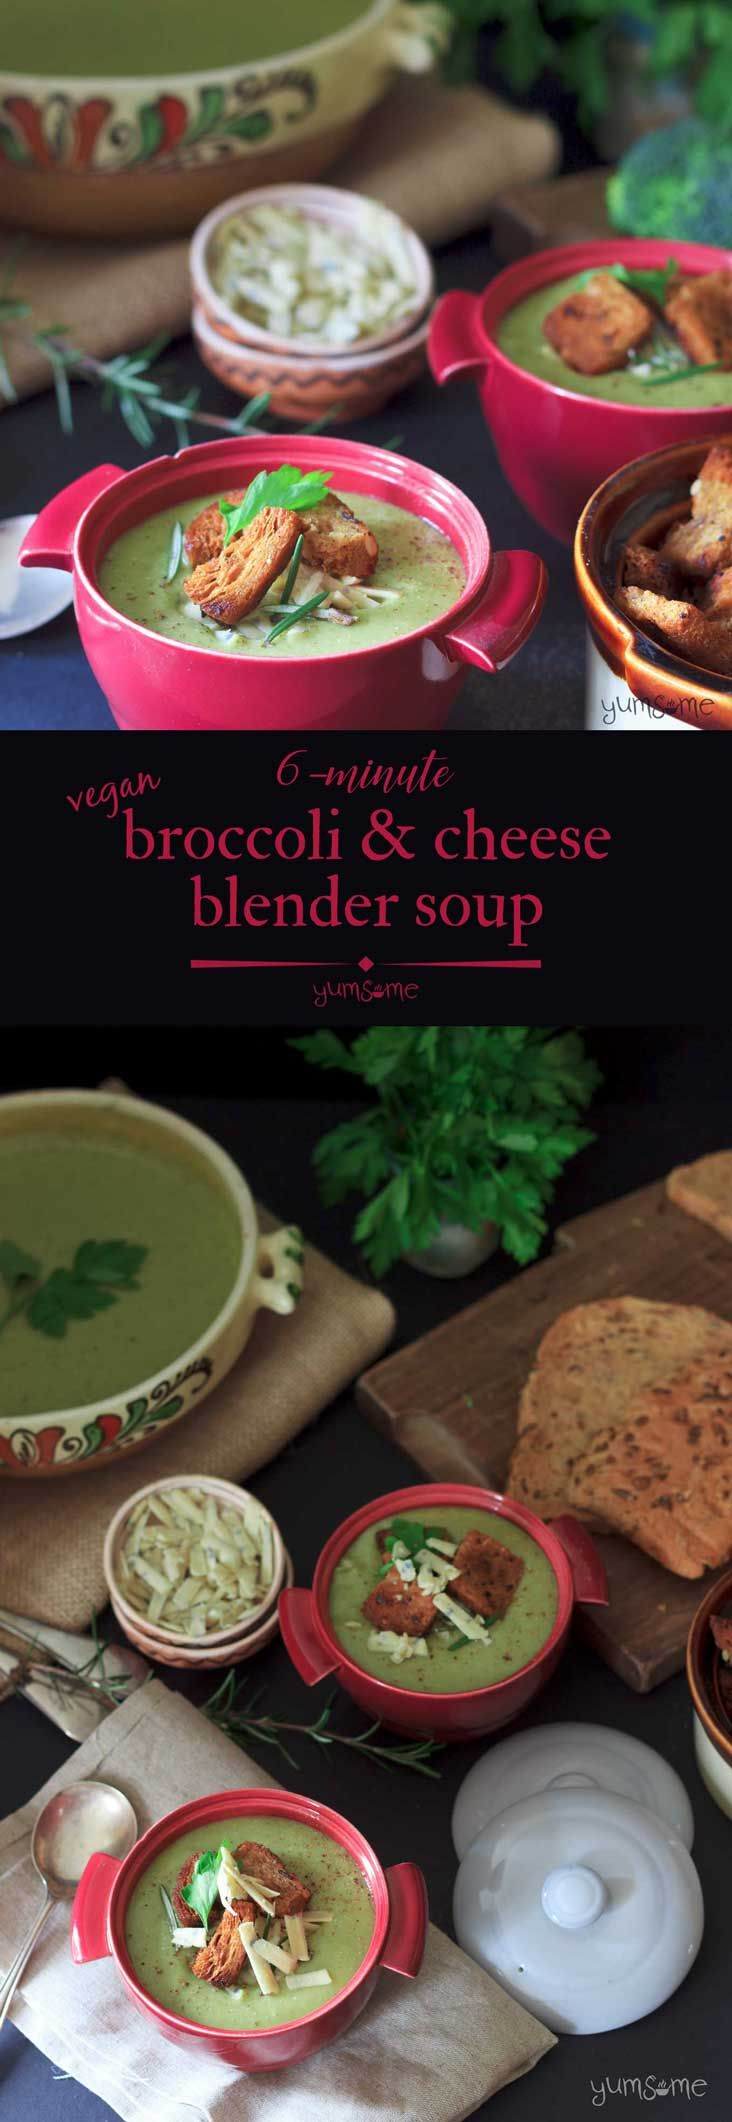 My 6-minute #vegan broccoli & cheese #blender #soup is low in fat, contains just 176 calories, and is ready in less time than it takes to make two slices of toast! | yumsome.com via @yums0me